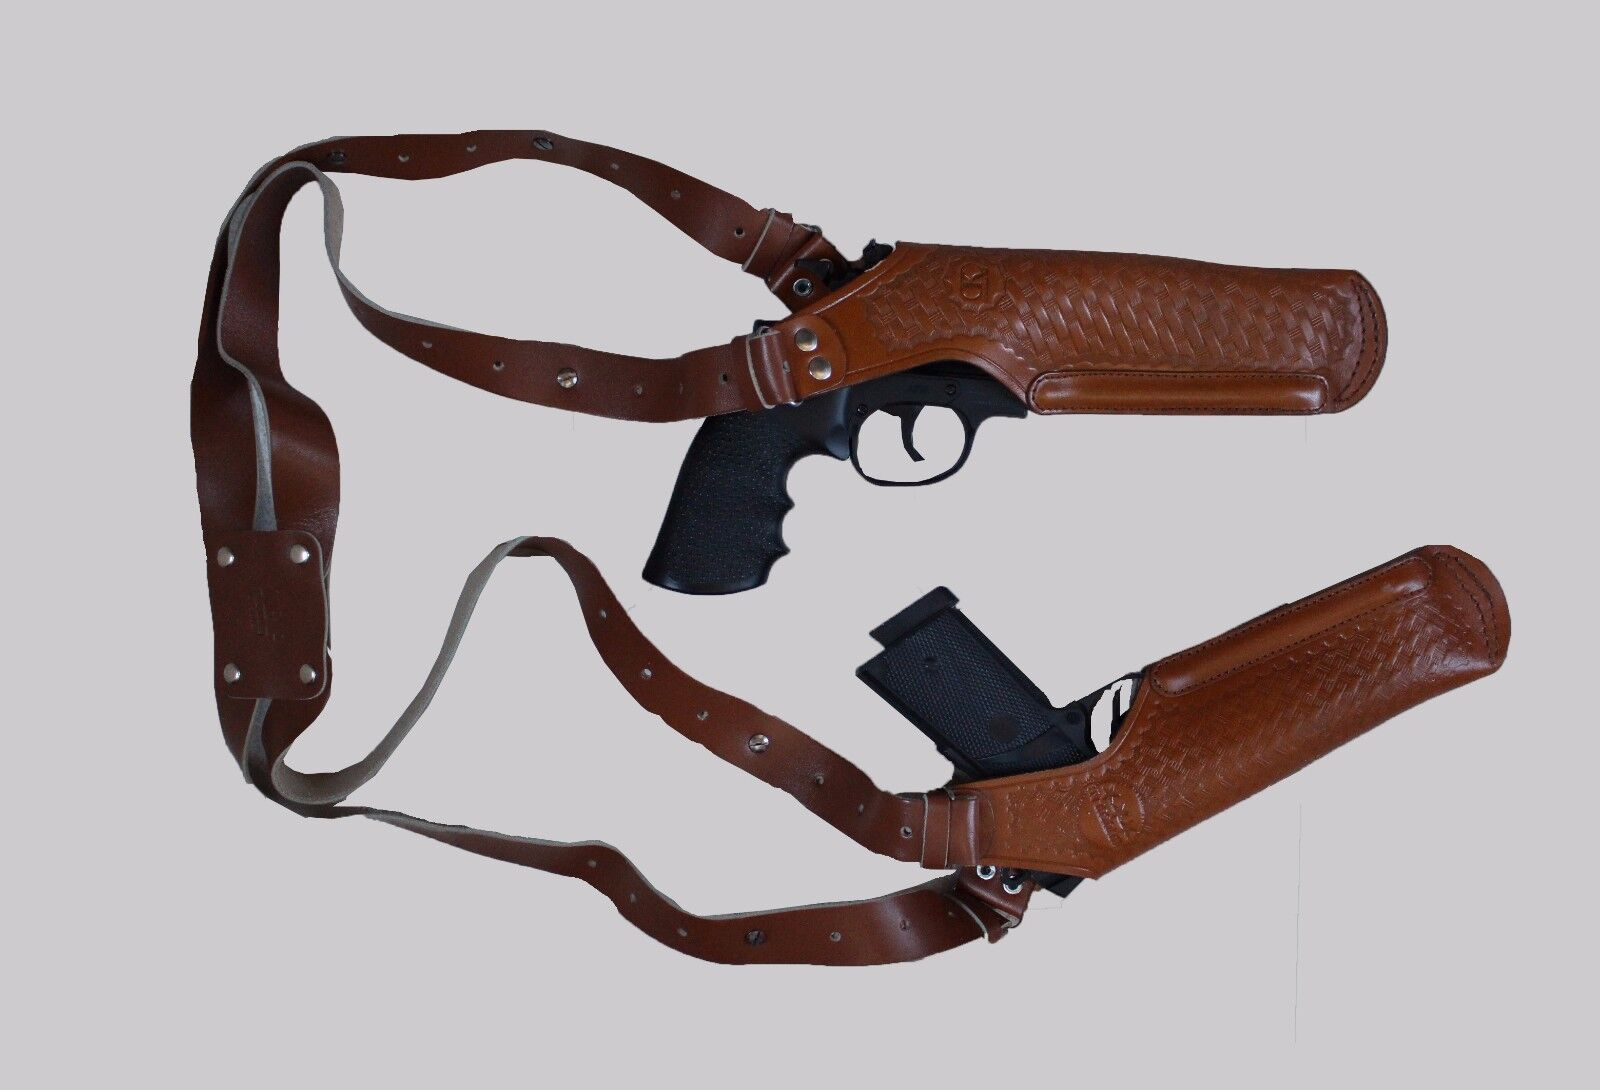 K448-92 2 Gun greenical Shoulder Holster Fits Beretta Taurus with 4  Handmade